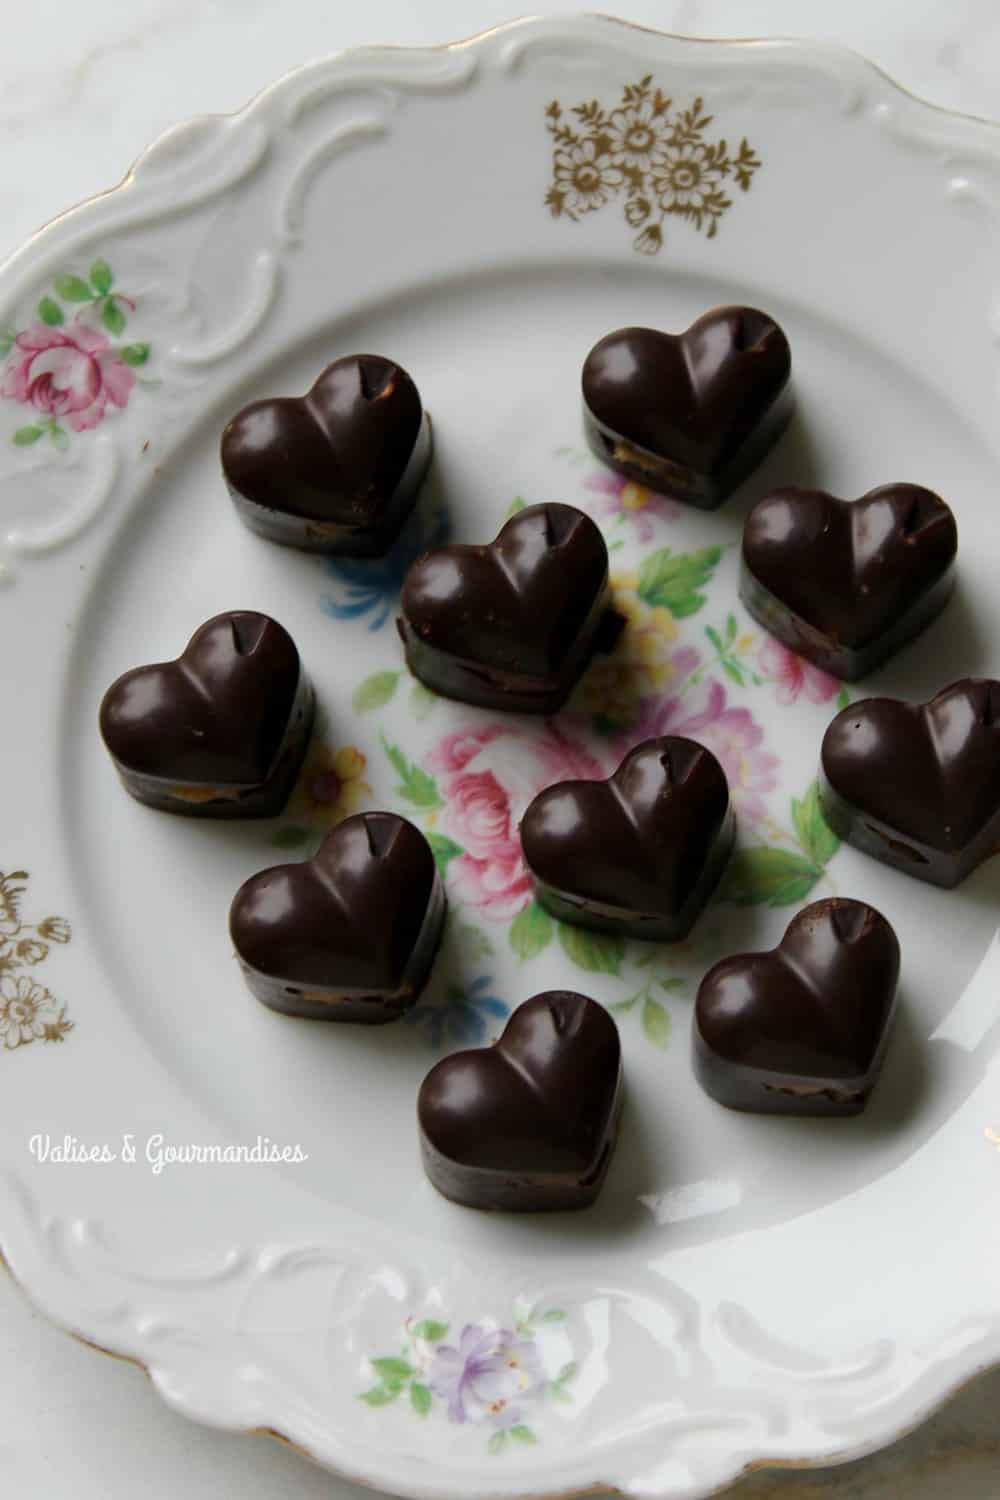 Vegan chocolate pralines with salted tahini date caramel